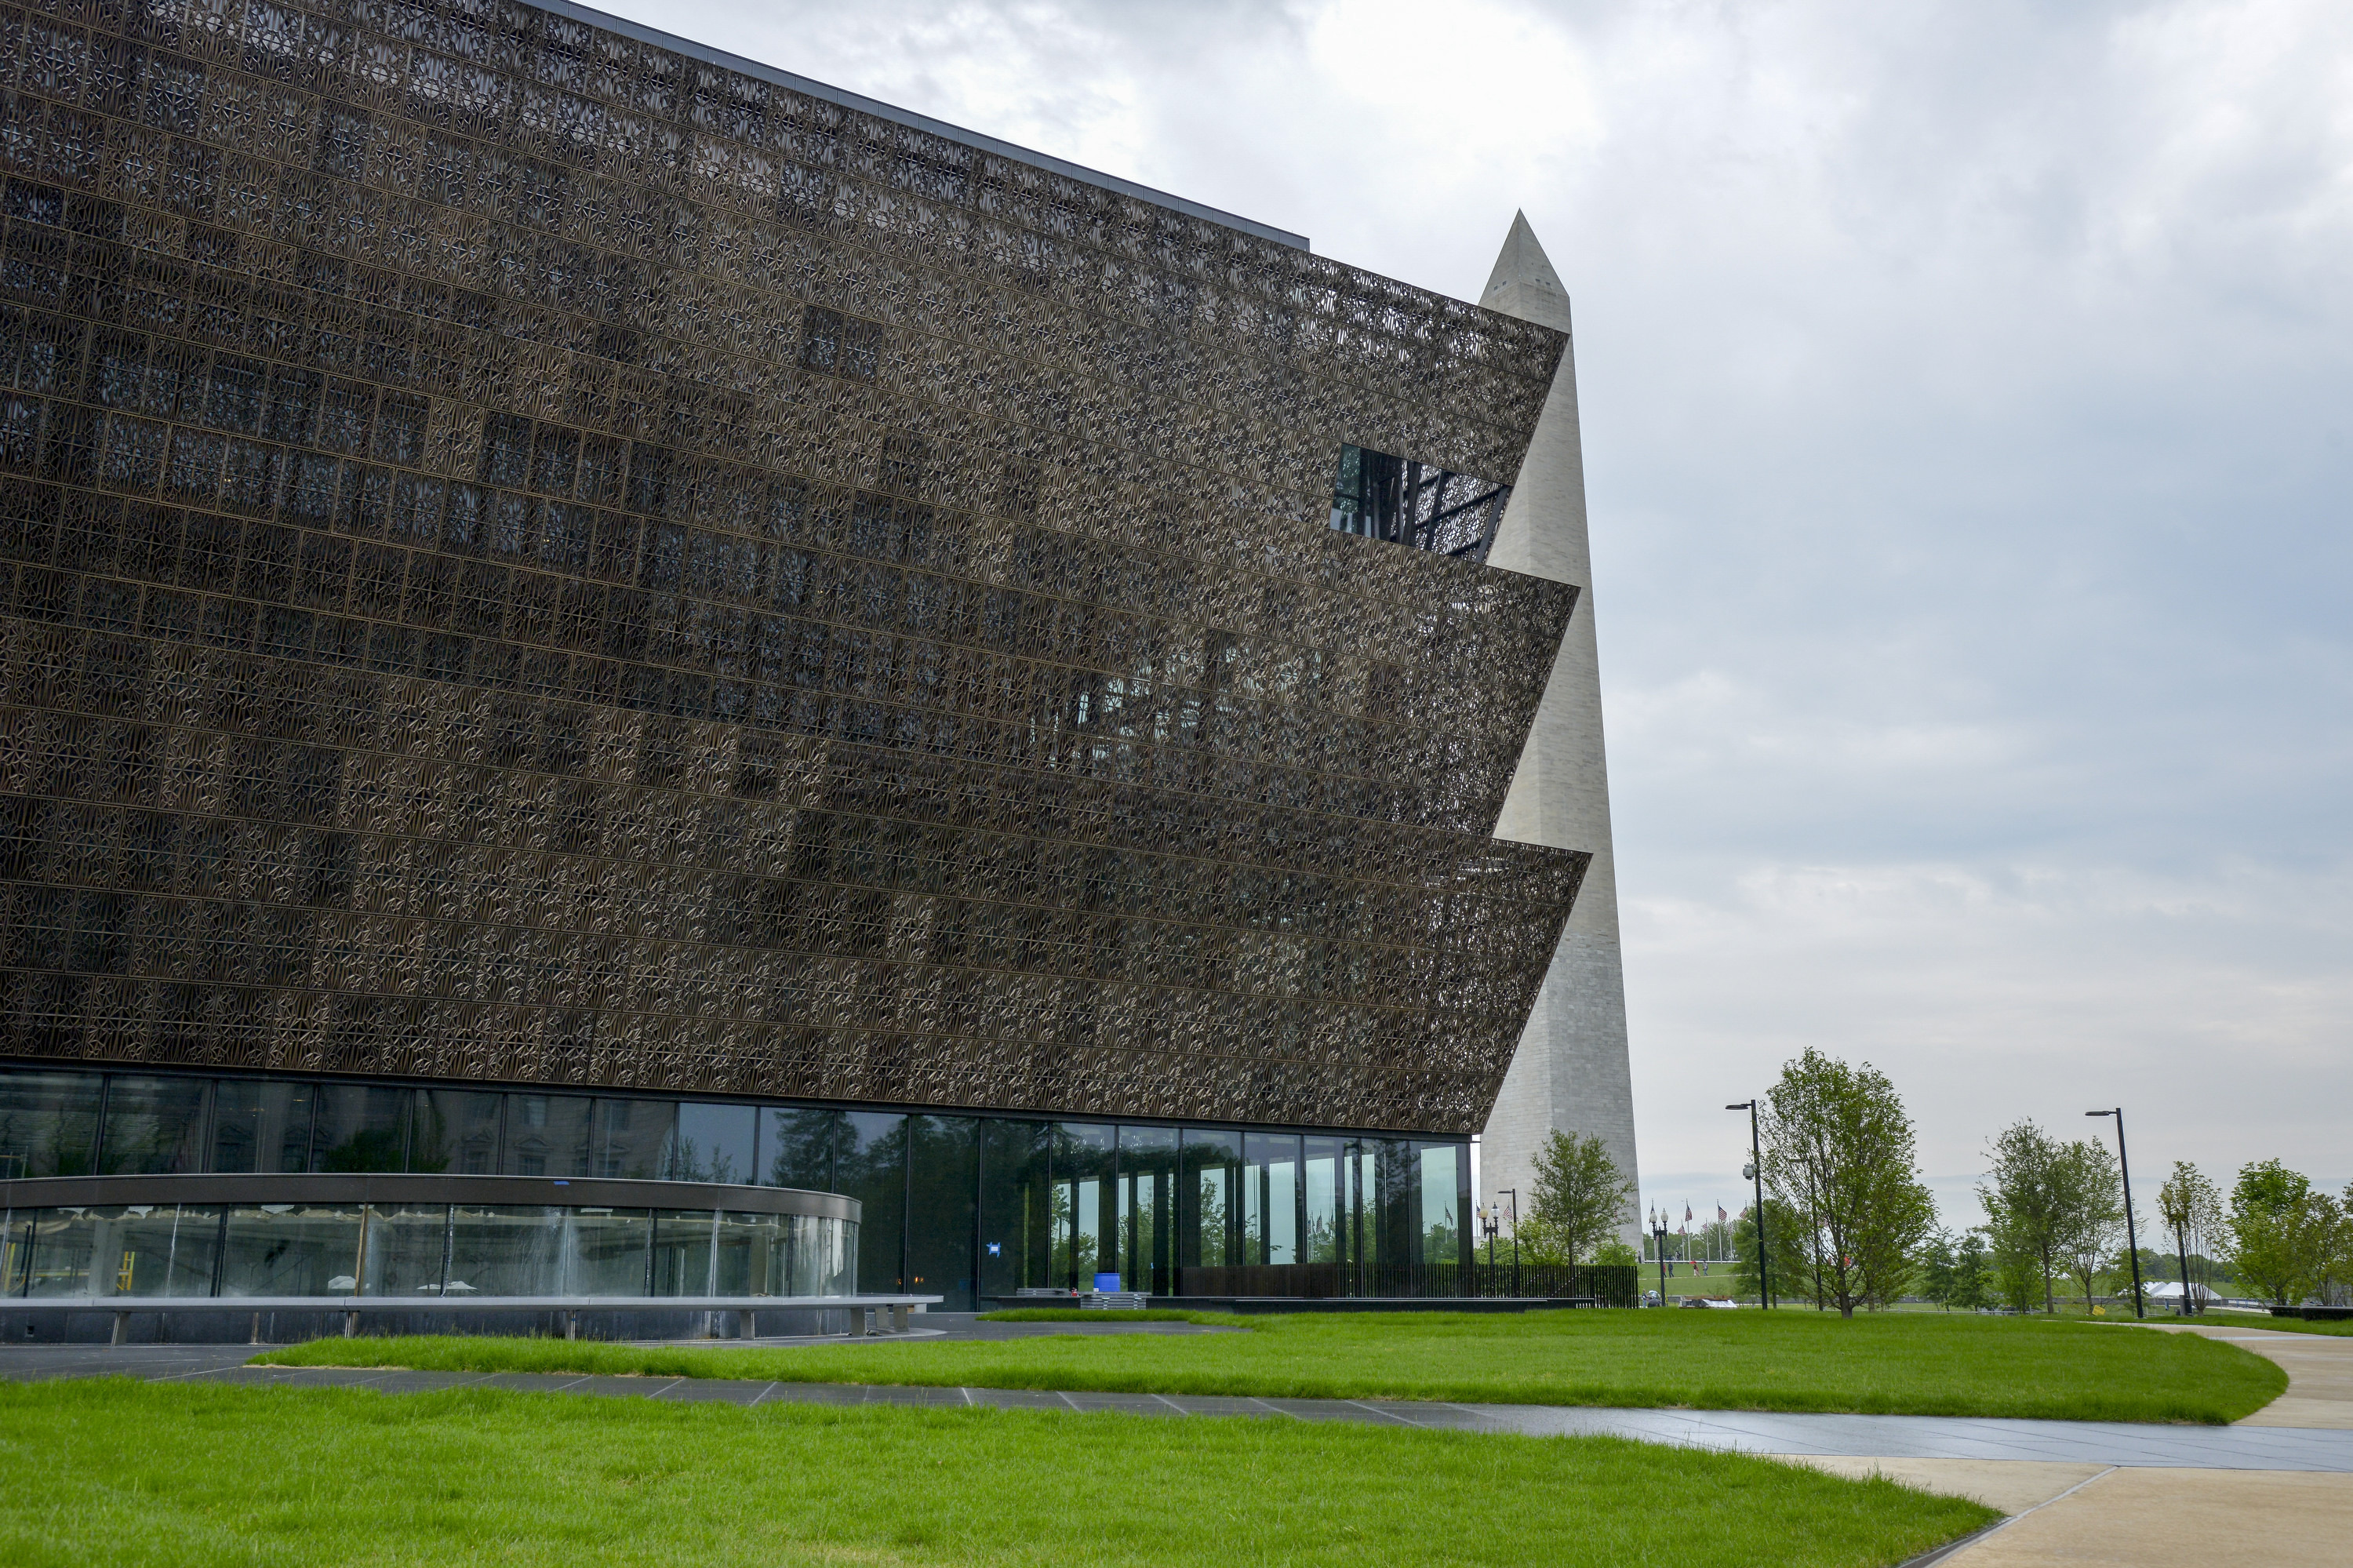 The Smithsonian National Museum of African American History and Culture sits near the Washington Monument in Washington on May 10, 2016.